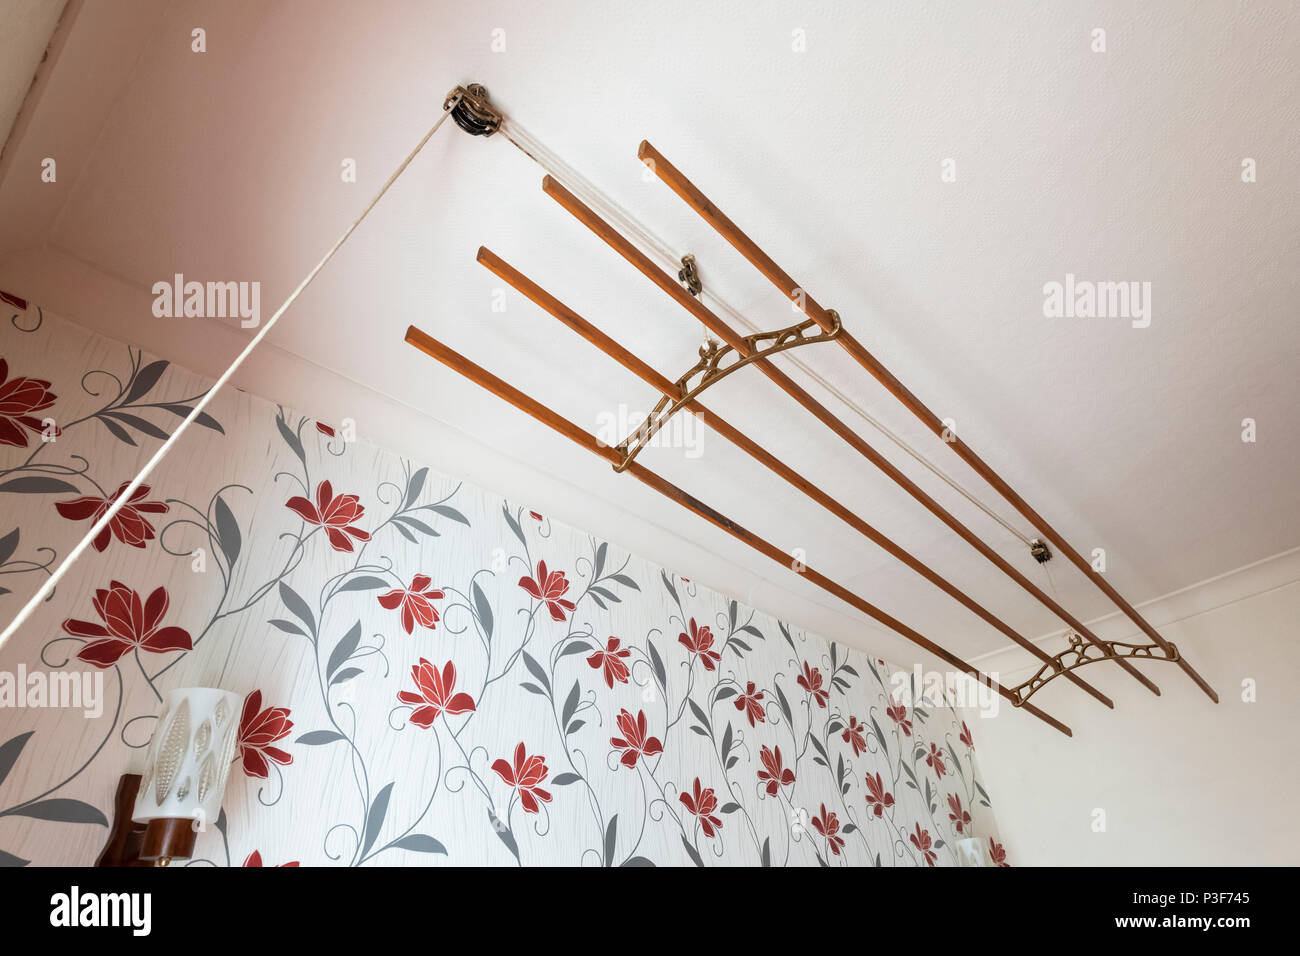 An old fashioned sheila maid (clothes airer) in a terraced house in the north of England. - Stock Image